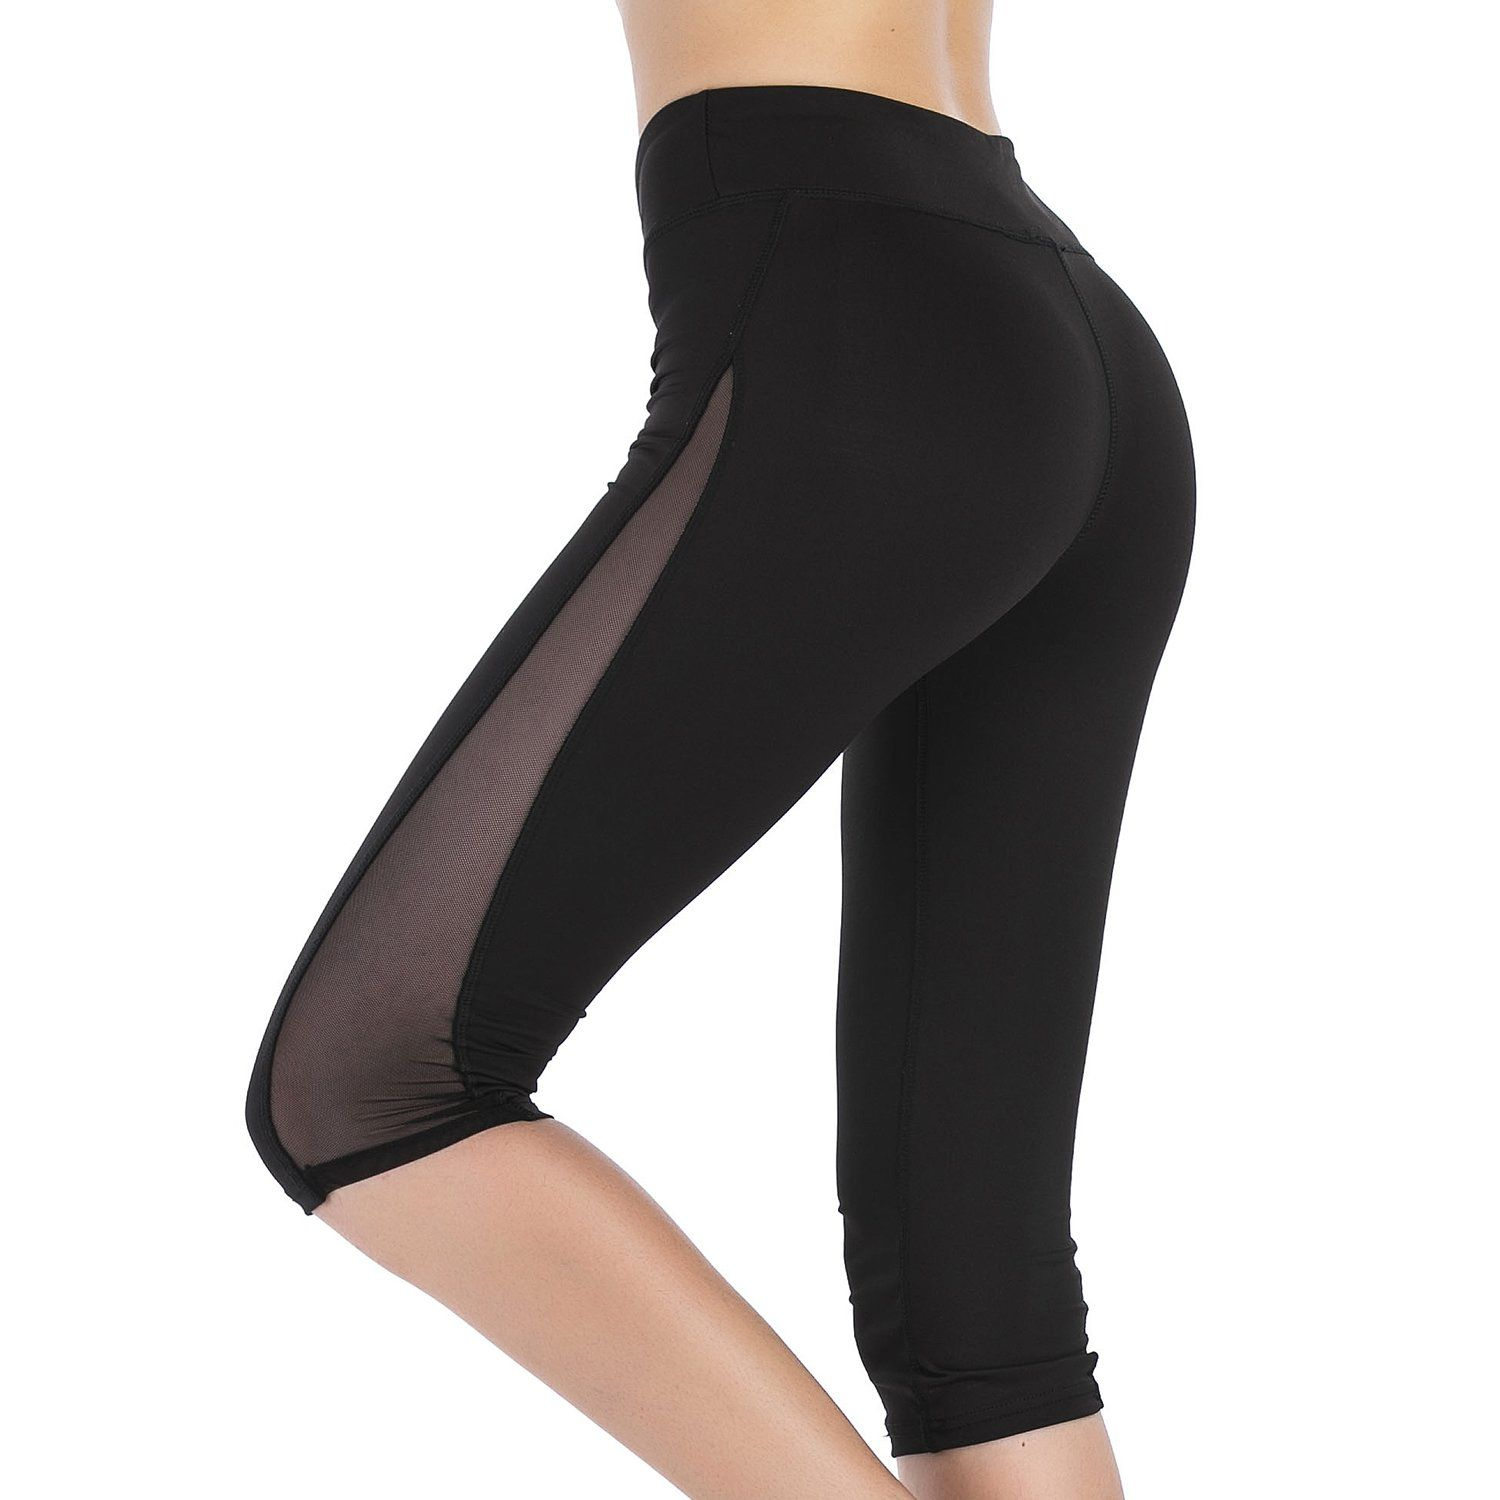 dee8c91c72825 Imido Women's Mesh Yoga Capri Pants Workout Running Crop Leggings With  Inner Pocket (M). Marerial: 88% Polyester, 12% Spandex. High Quality  Breathable Mesh ...